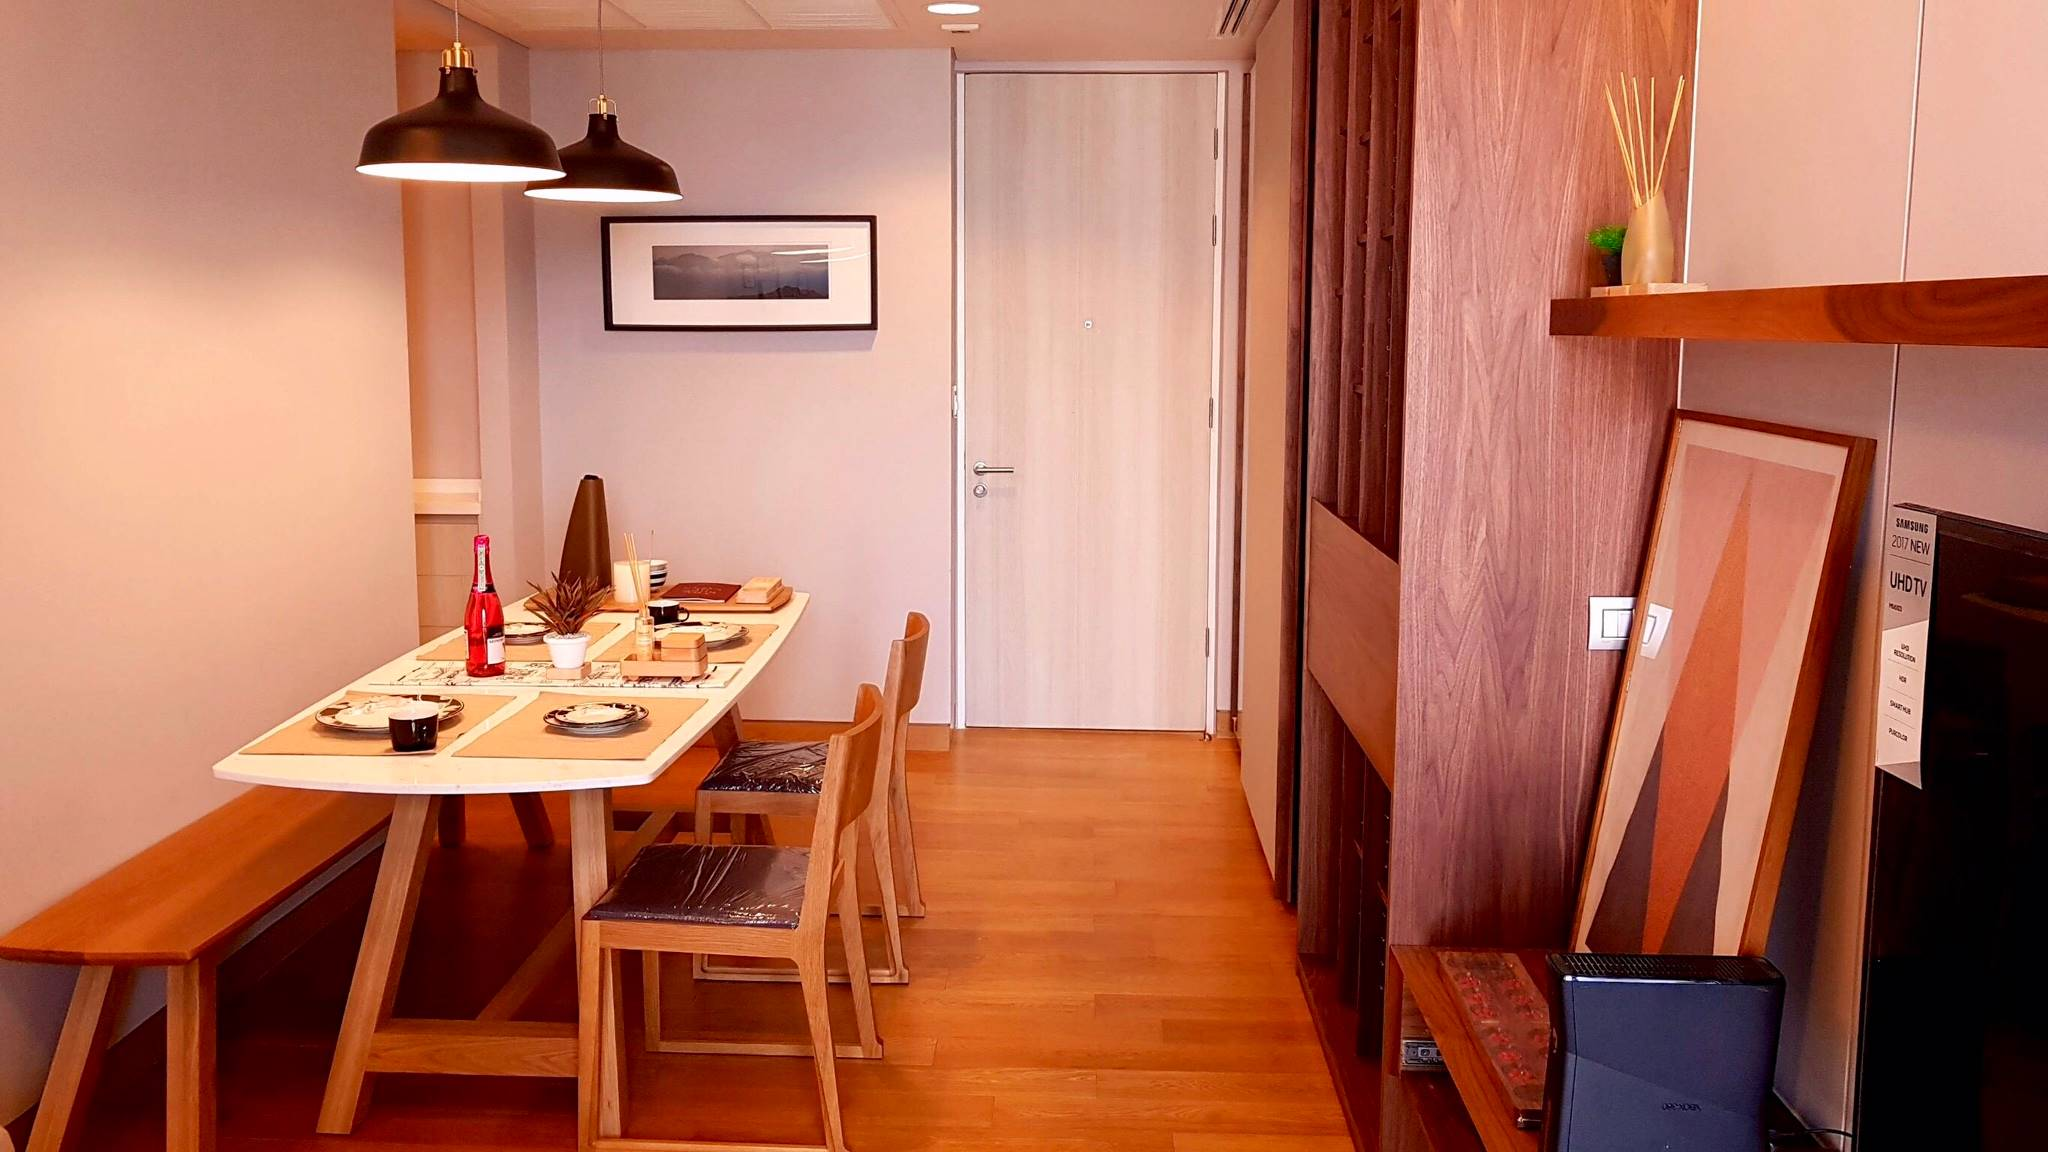 LTH3447 -The Lumpini 24 FOR RENT 2 beds 2 baths size 55.02 Sq.M. Nearby BTS Phrom Phong station ONLY 50k/Month